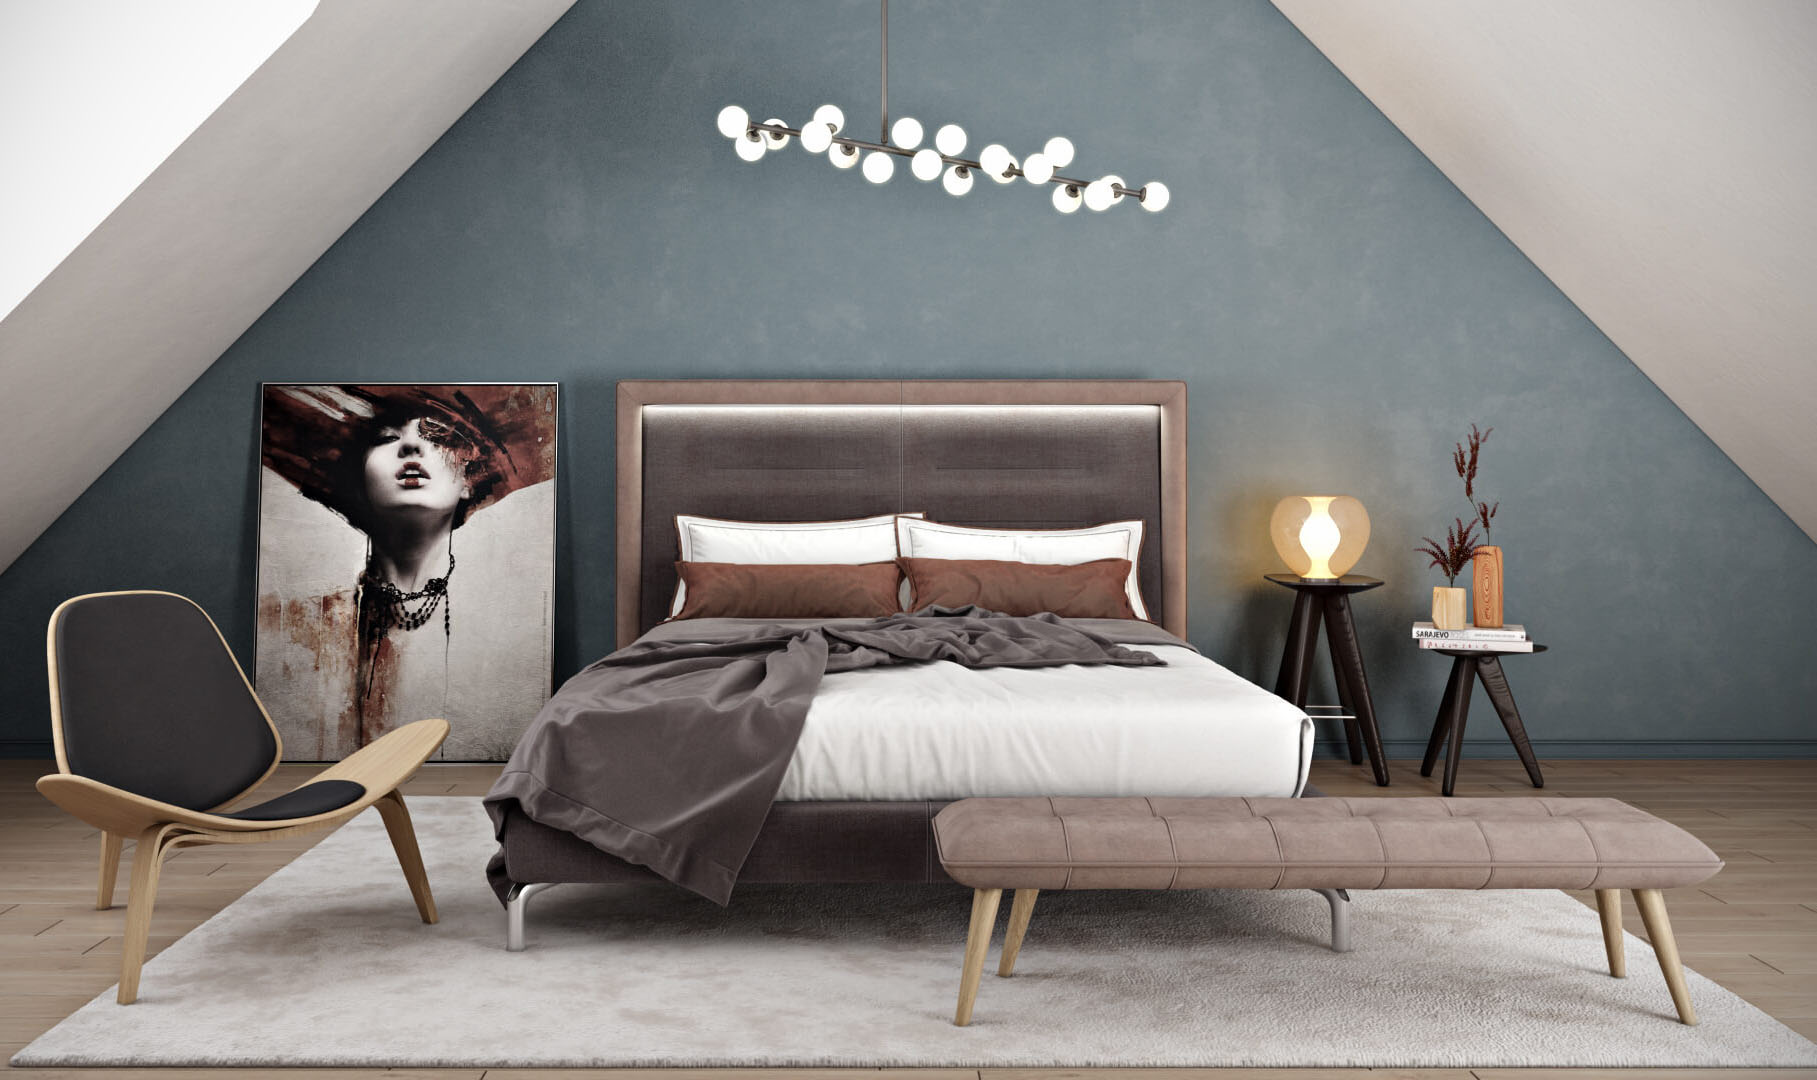 A Lifestyle 3D Rendering of a Bedroom